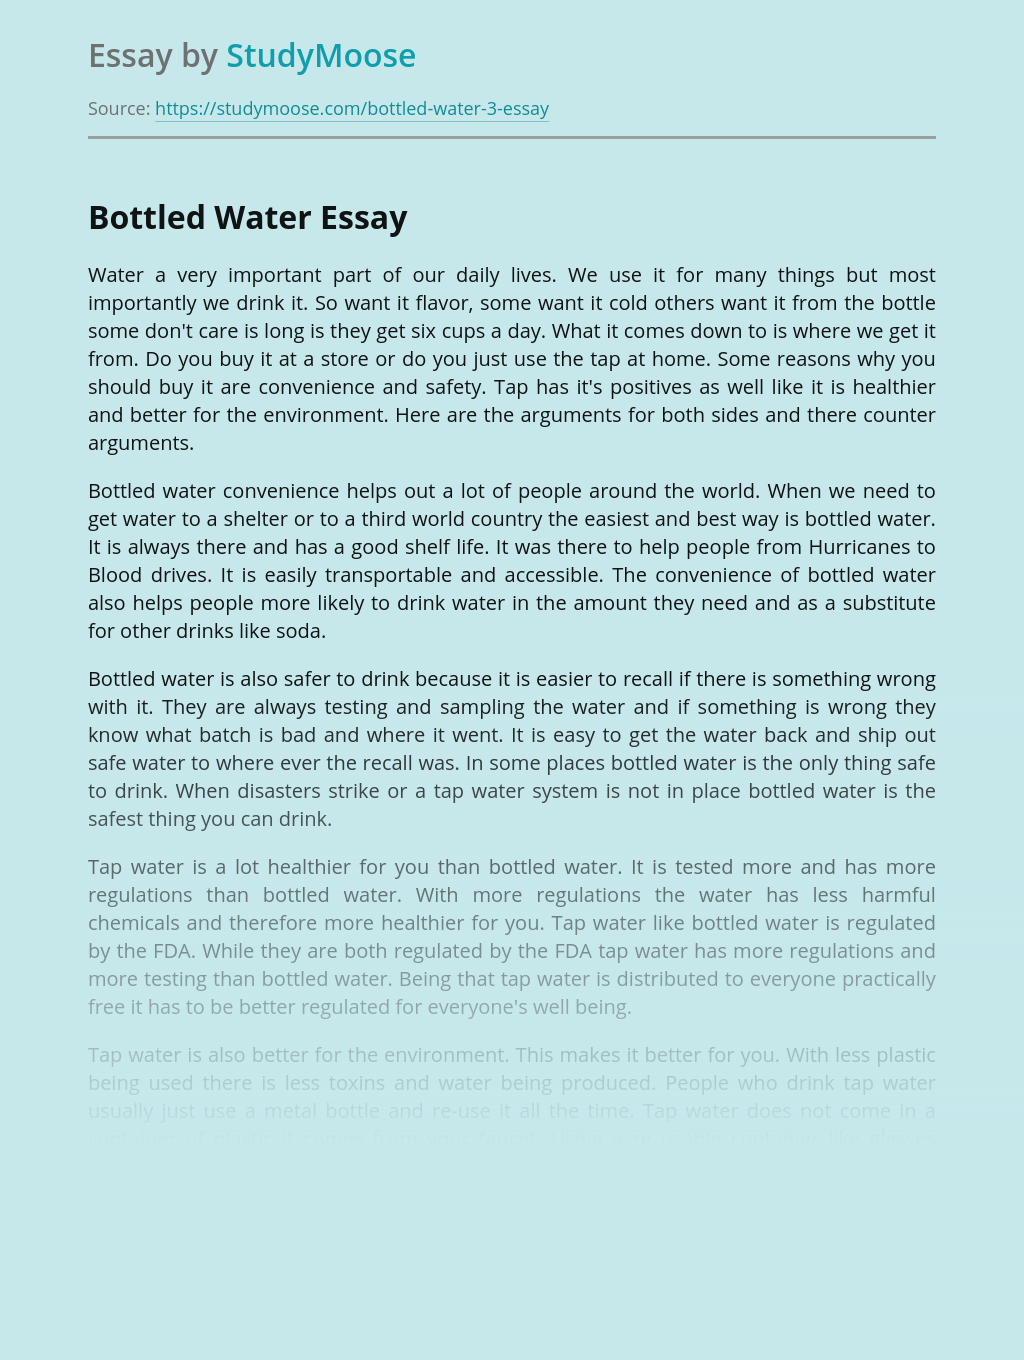 Convenience and Damage of Bottled Water